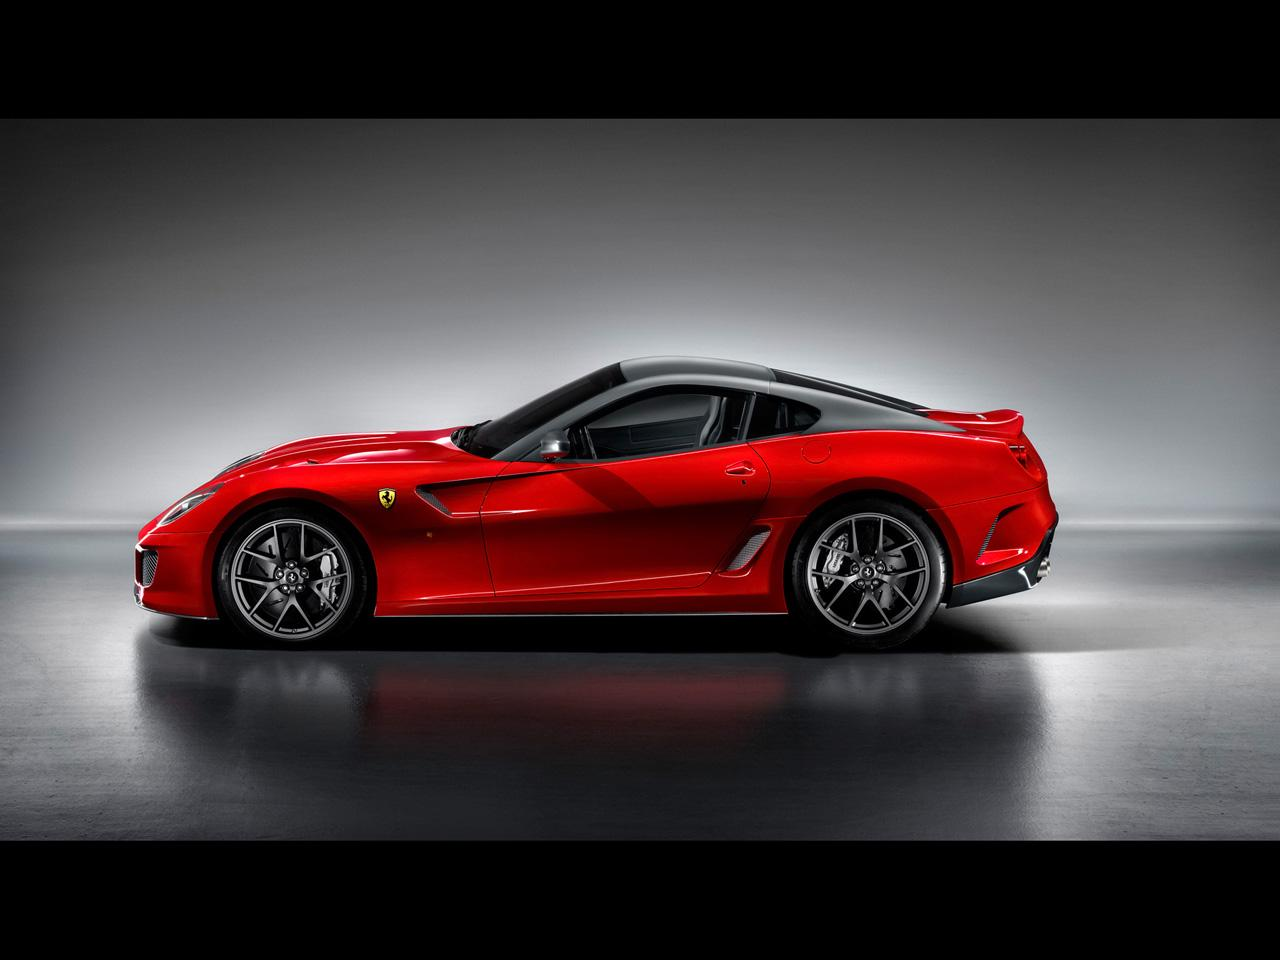 2010 Ferrari 599 GTO Wallpapers in High resolution by Cars-wallpapers ...